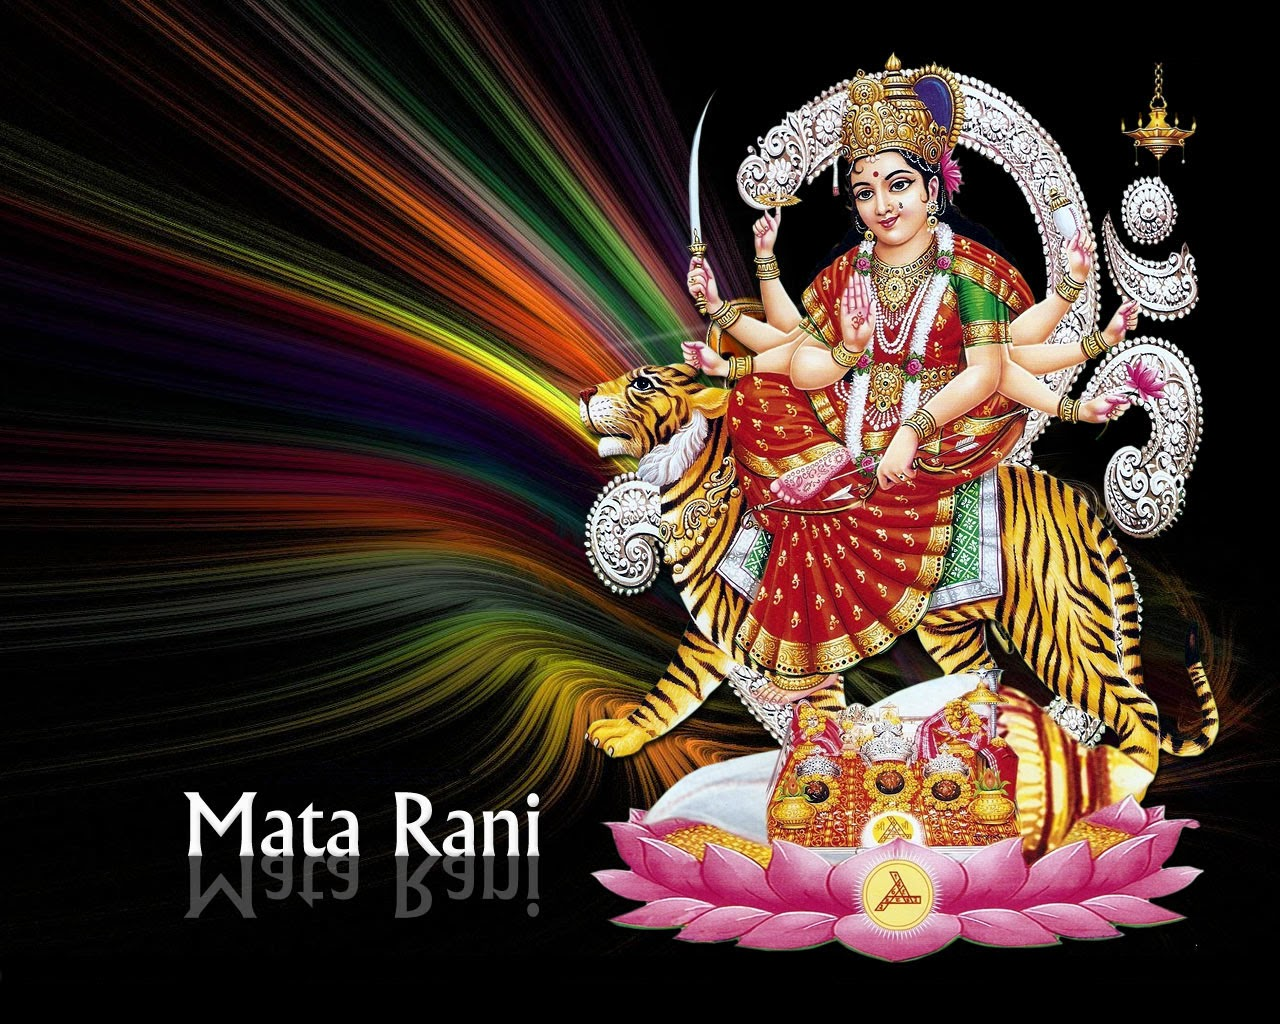 Hindu God Maa Durga Wallpapers Images Pictures Free Download